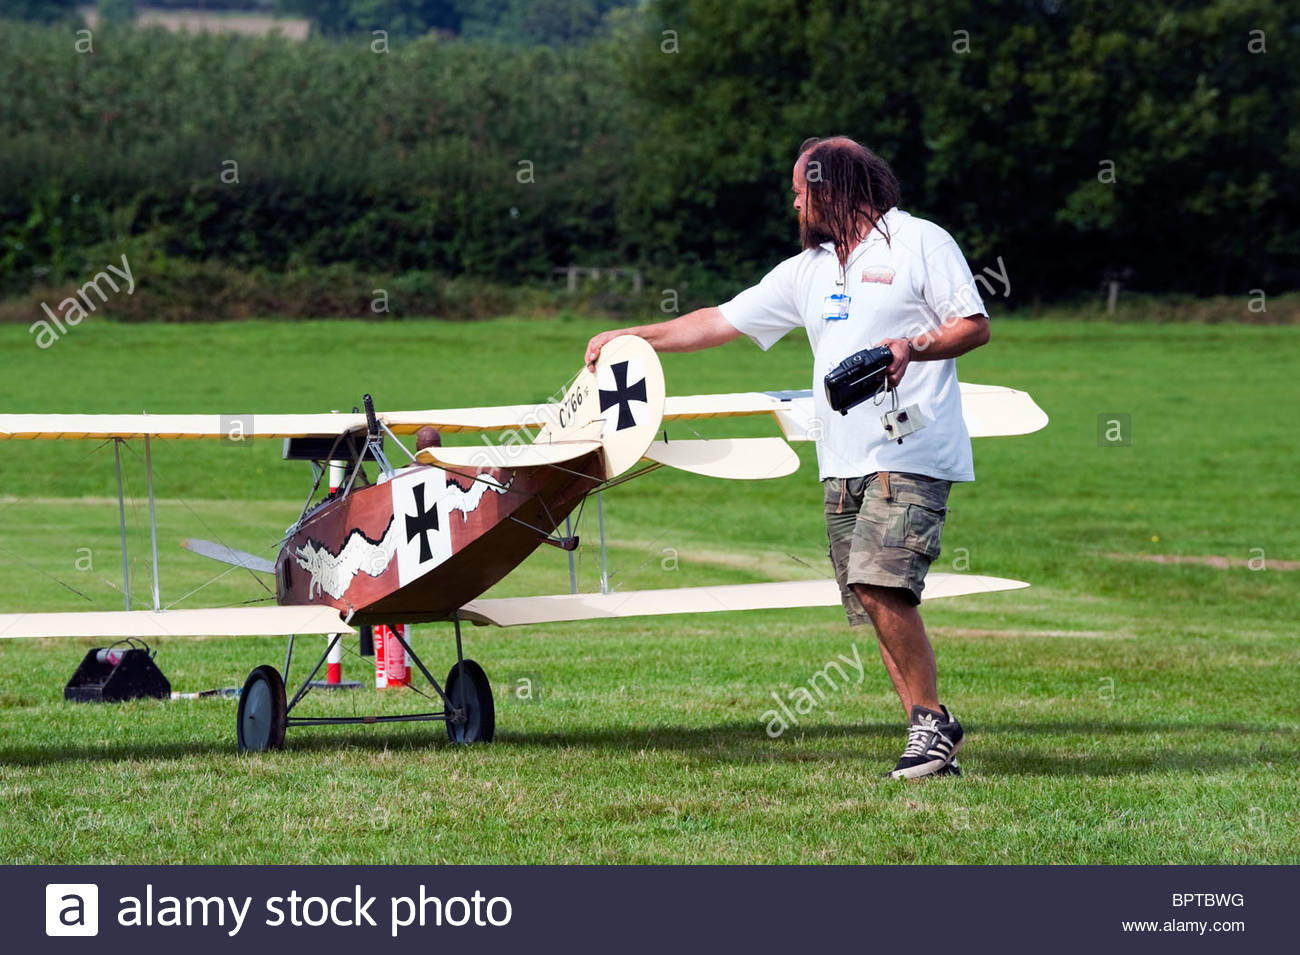 Large model aircraft flying display at Much Marcle, Herefordshire, UK. Man with large radio controlled biplane. - Stock Image